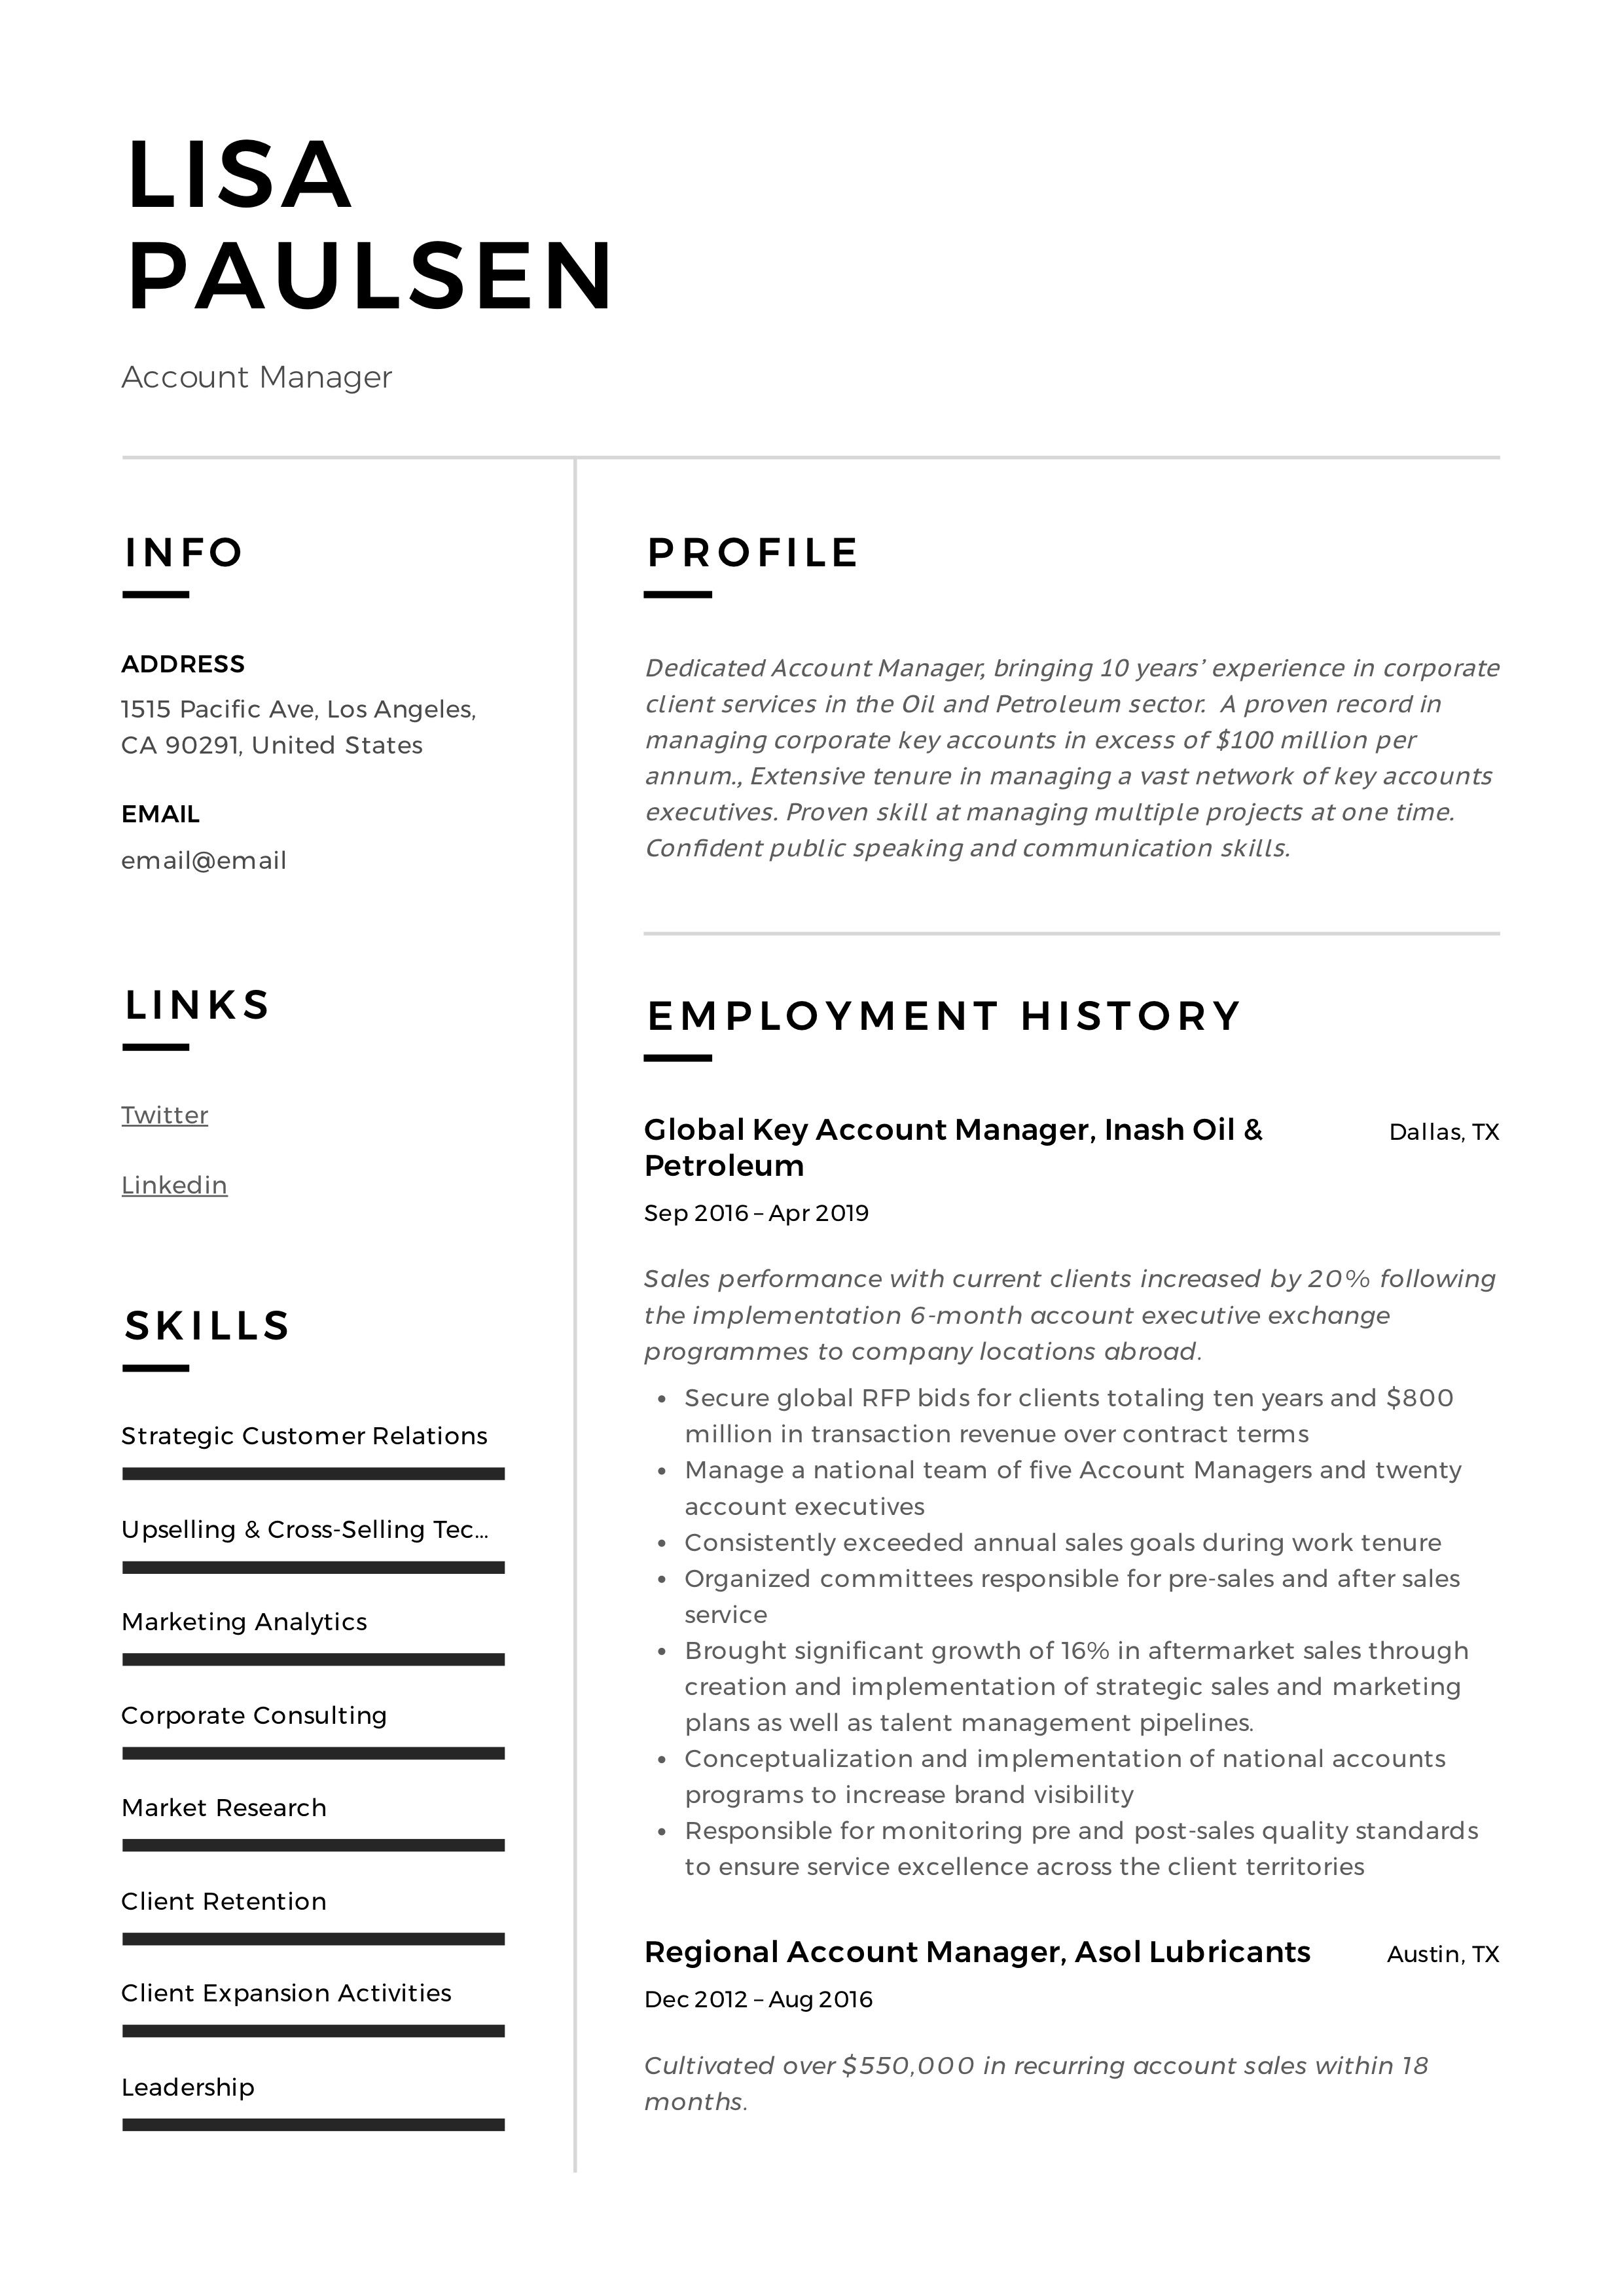 Professional account manager resume template design